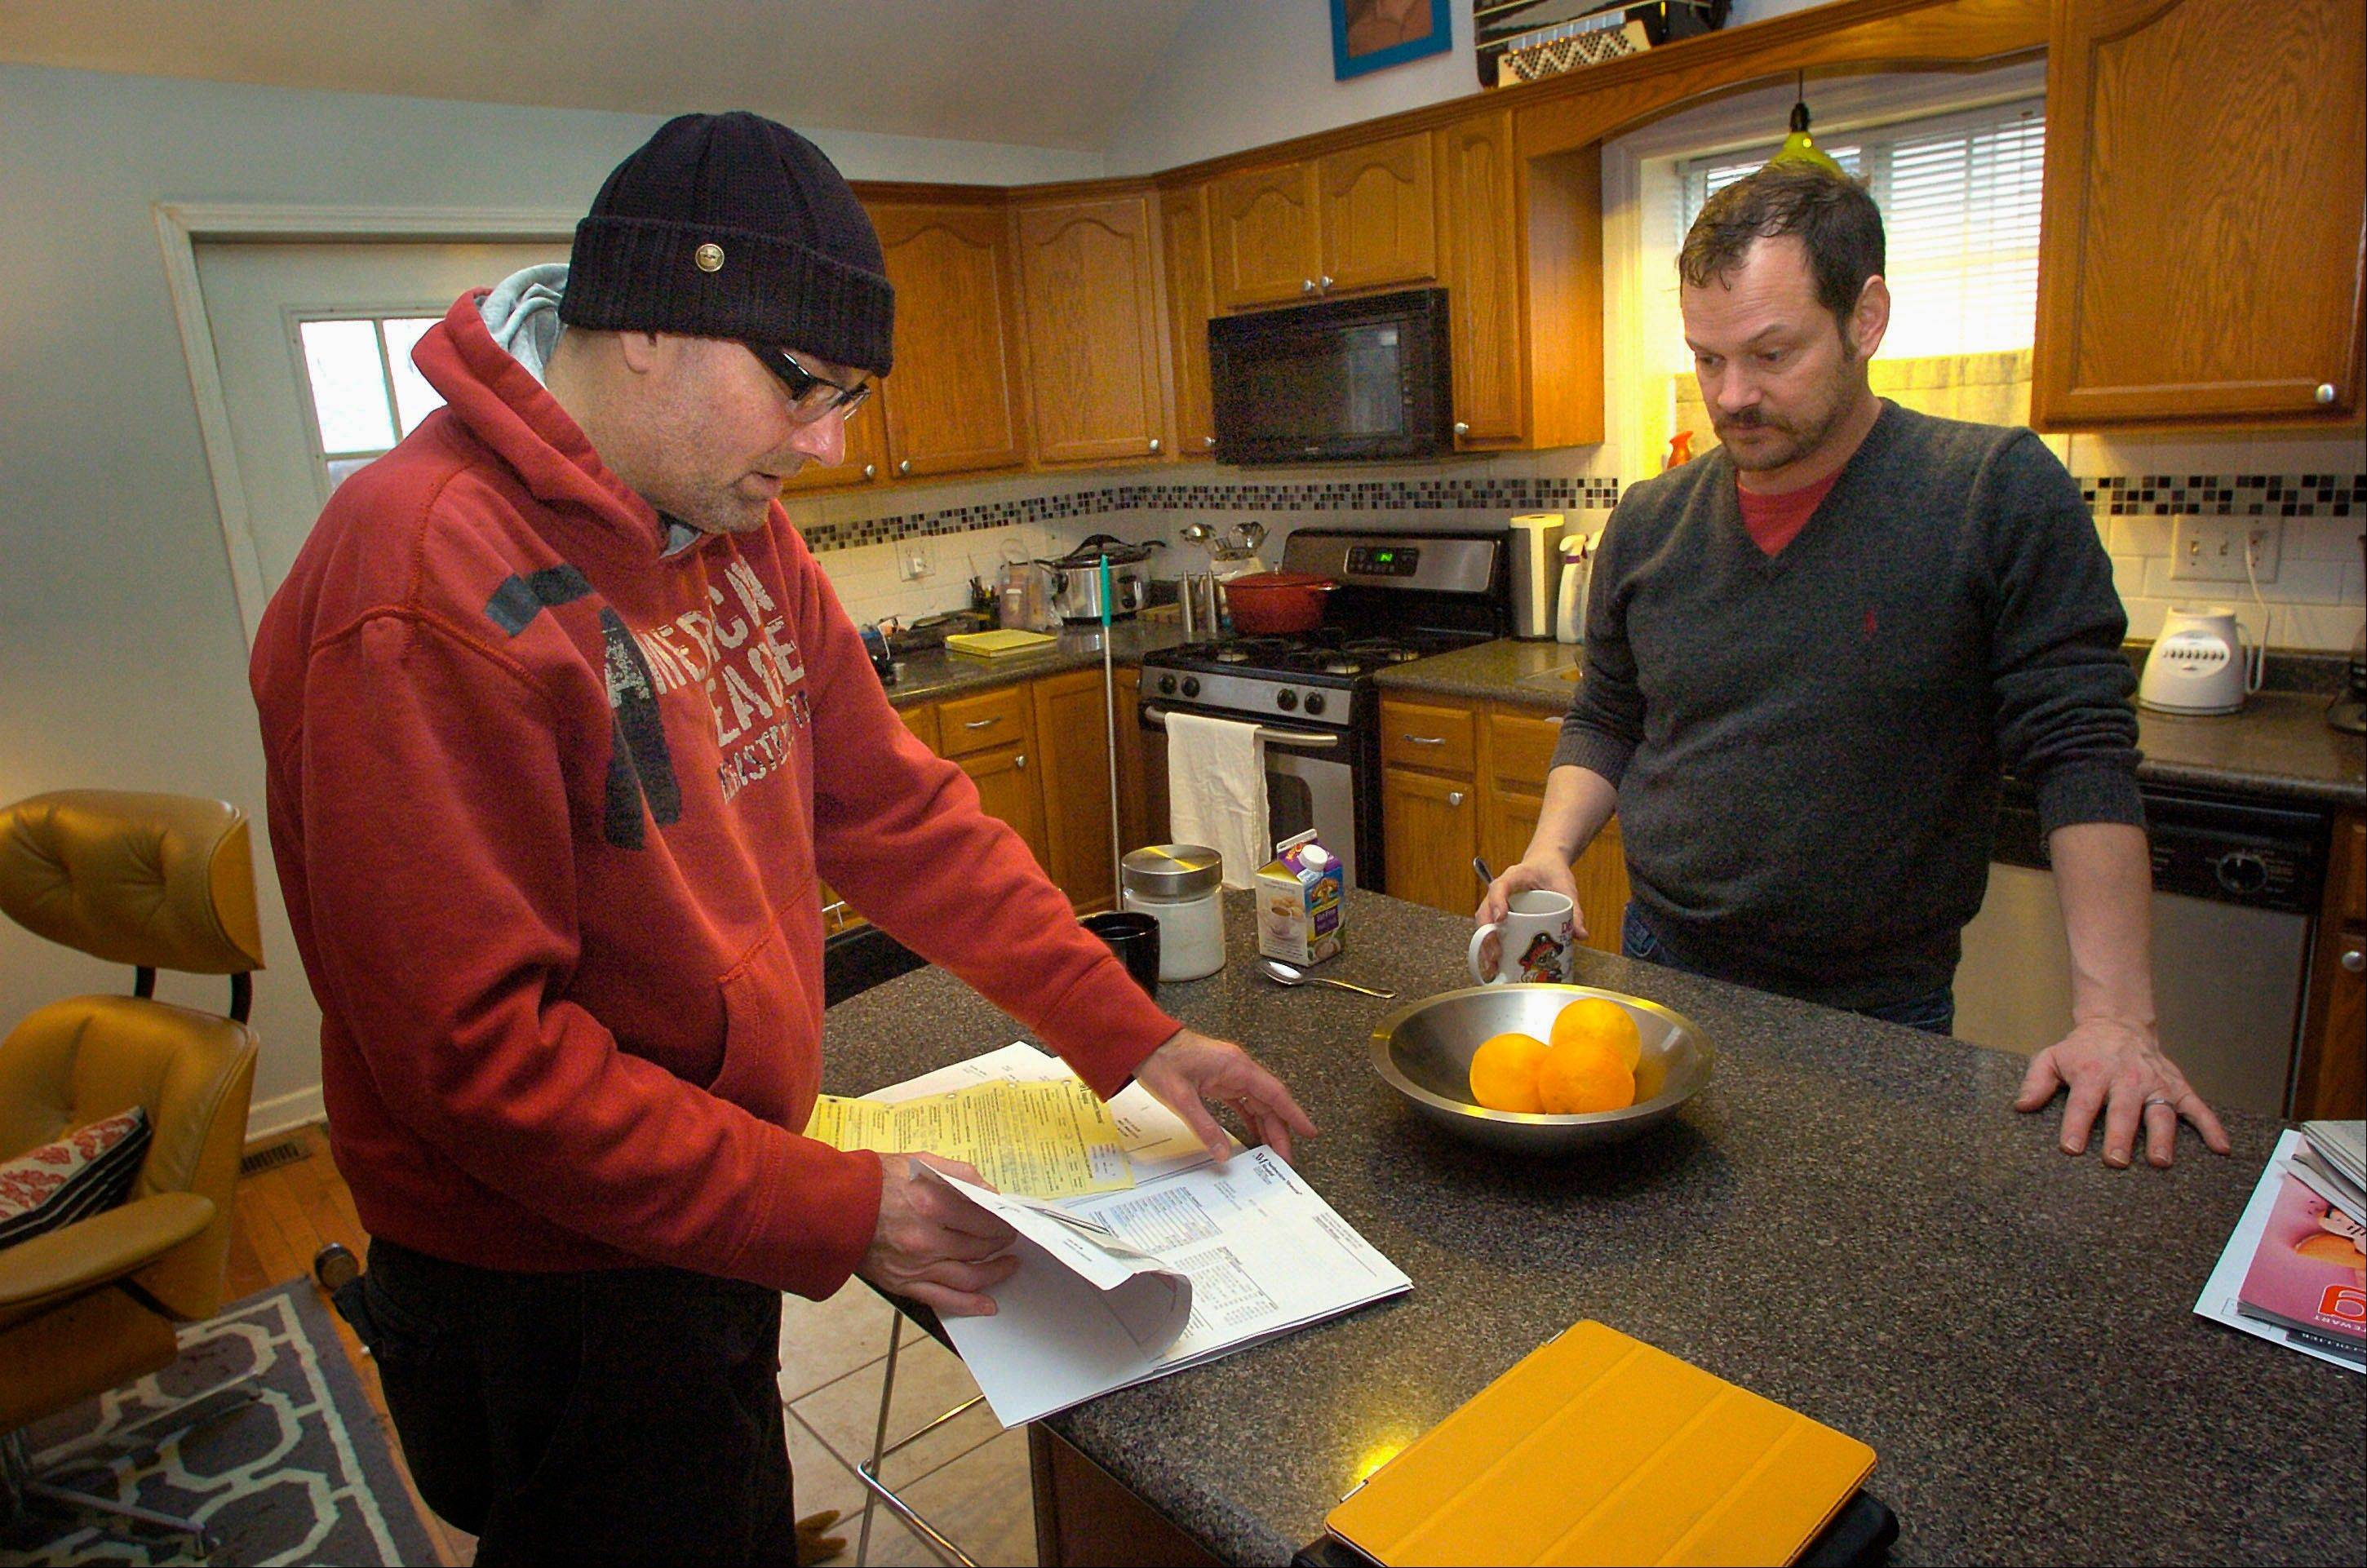 Noah Dean Baker, left, and his partner, Ken Sprouls, look over the bill Baker received for a liver transplant at their home in Bloomington.